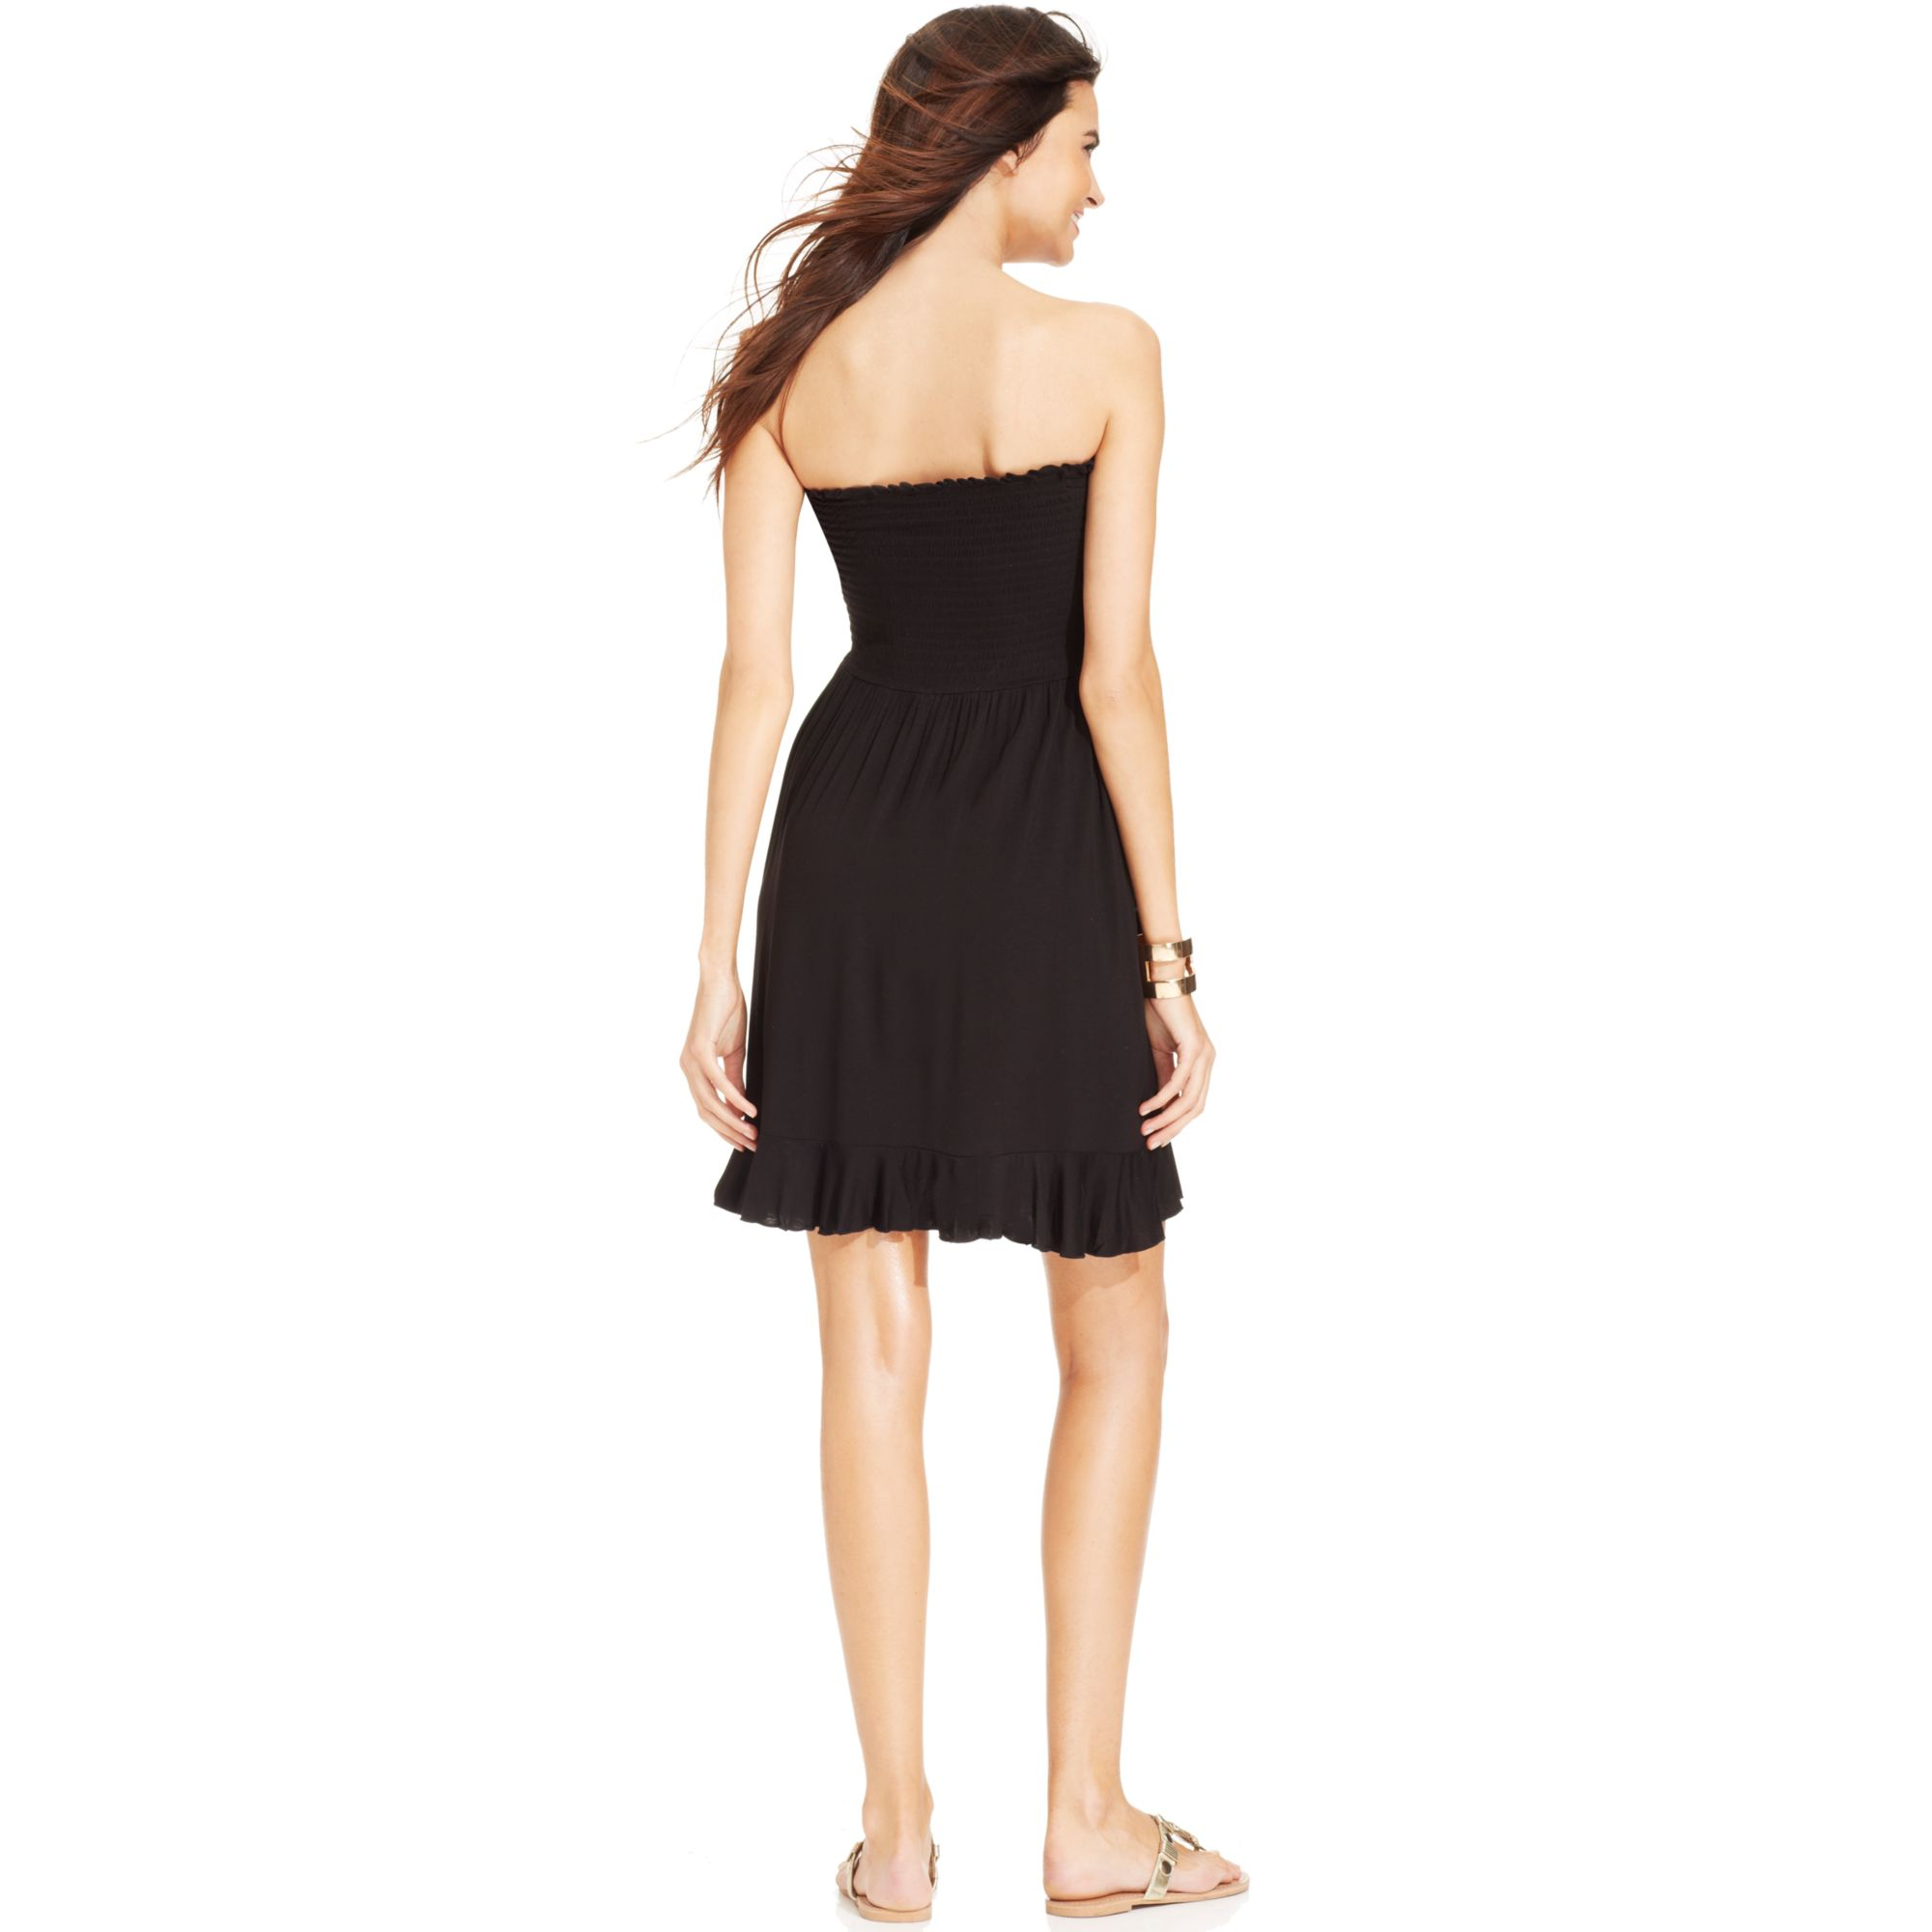 e2724f1233d07 Dotti Strapless Smocked Coverup Dress in Black - Lyst